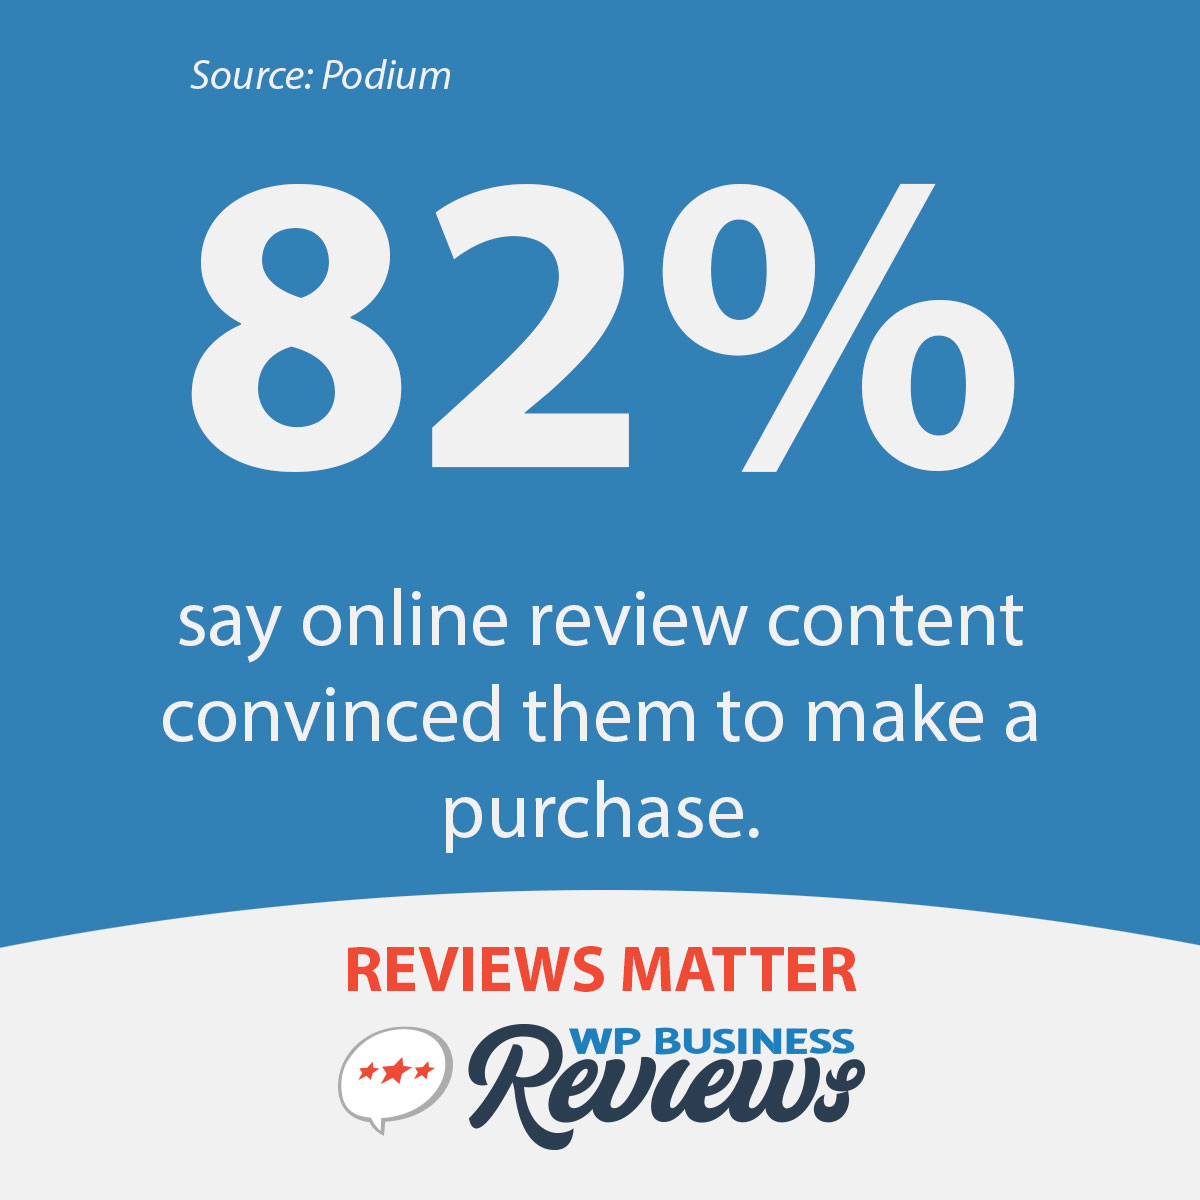 According to Podium, 82% of people say online review content convinced them to make a purchase.